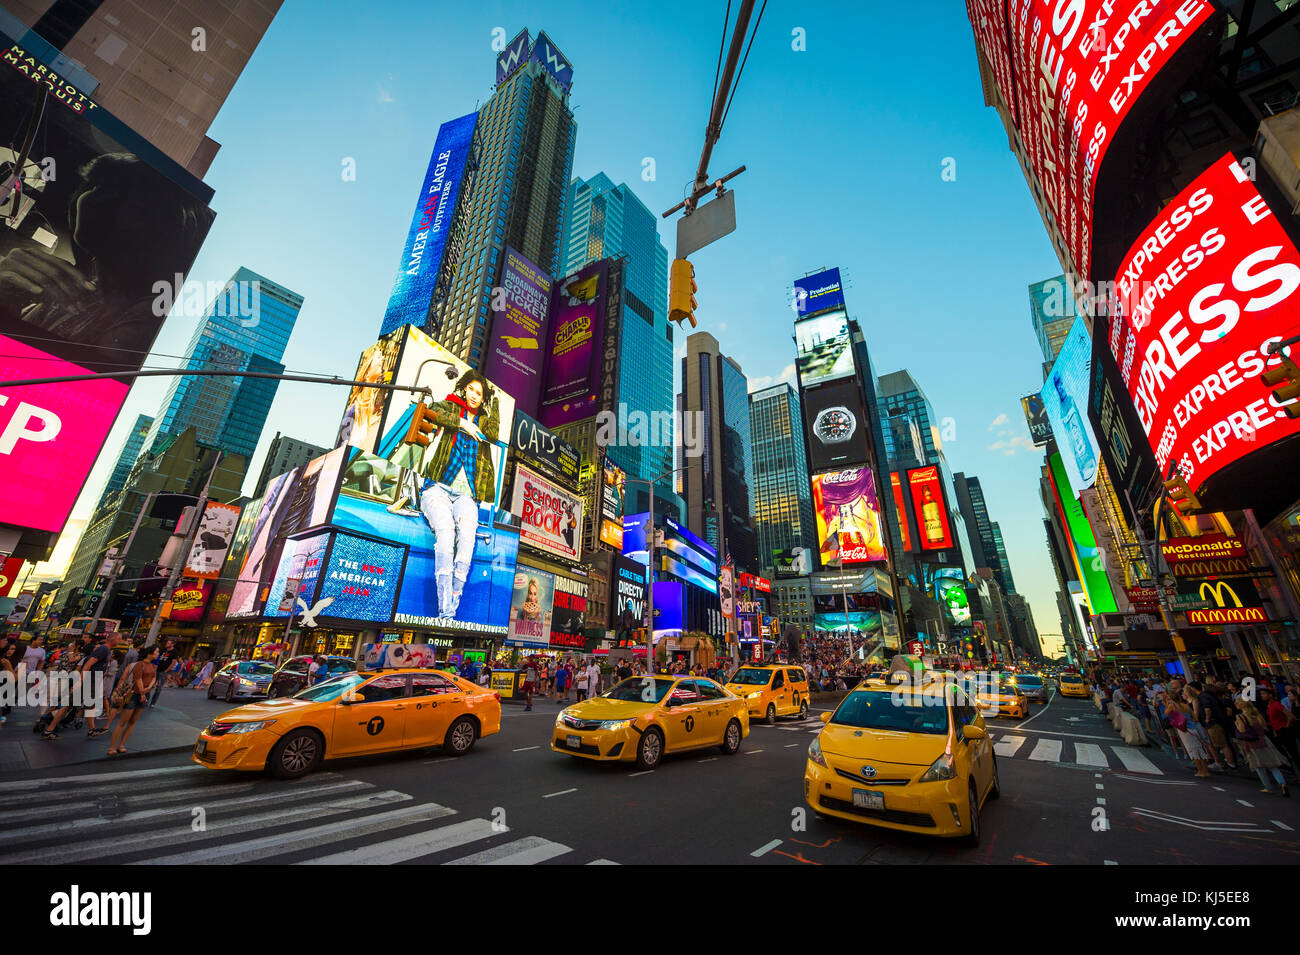 NEW YORK CITY - AUGUST 23, 2017: Bright neon signage flashes over crowds and taxi traffic zooming past Times Square - Stock Image